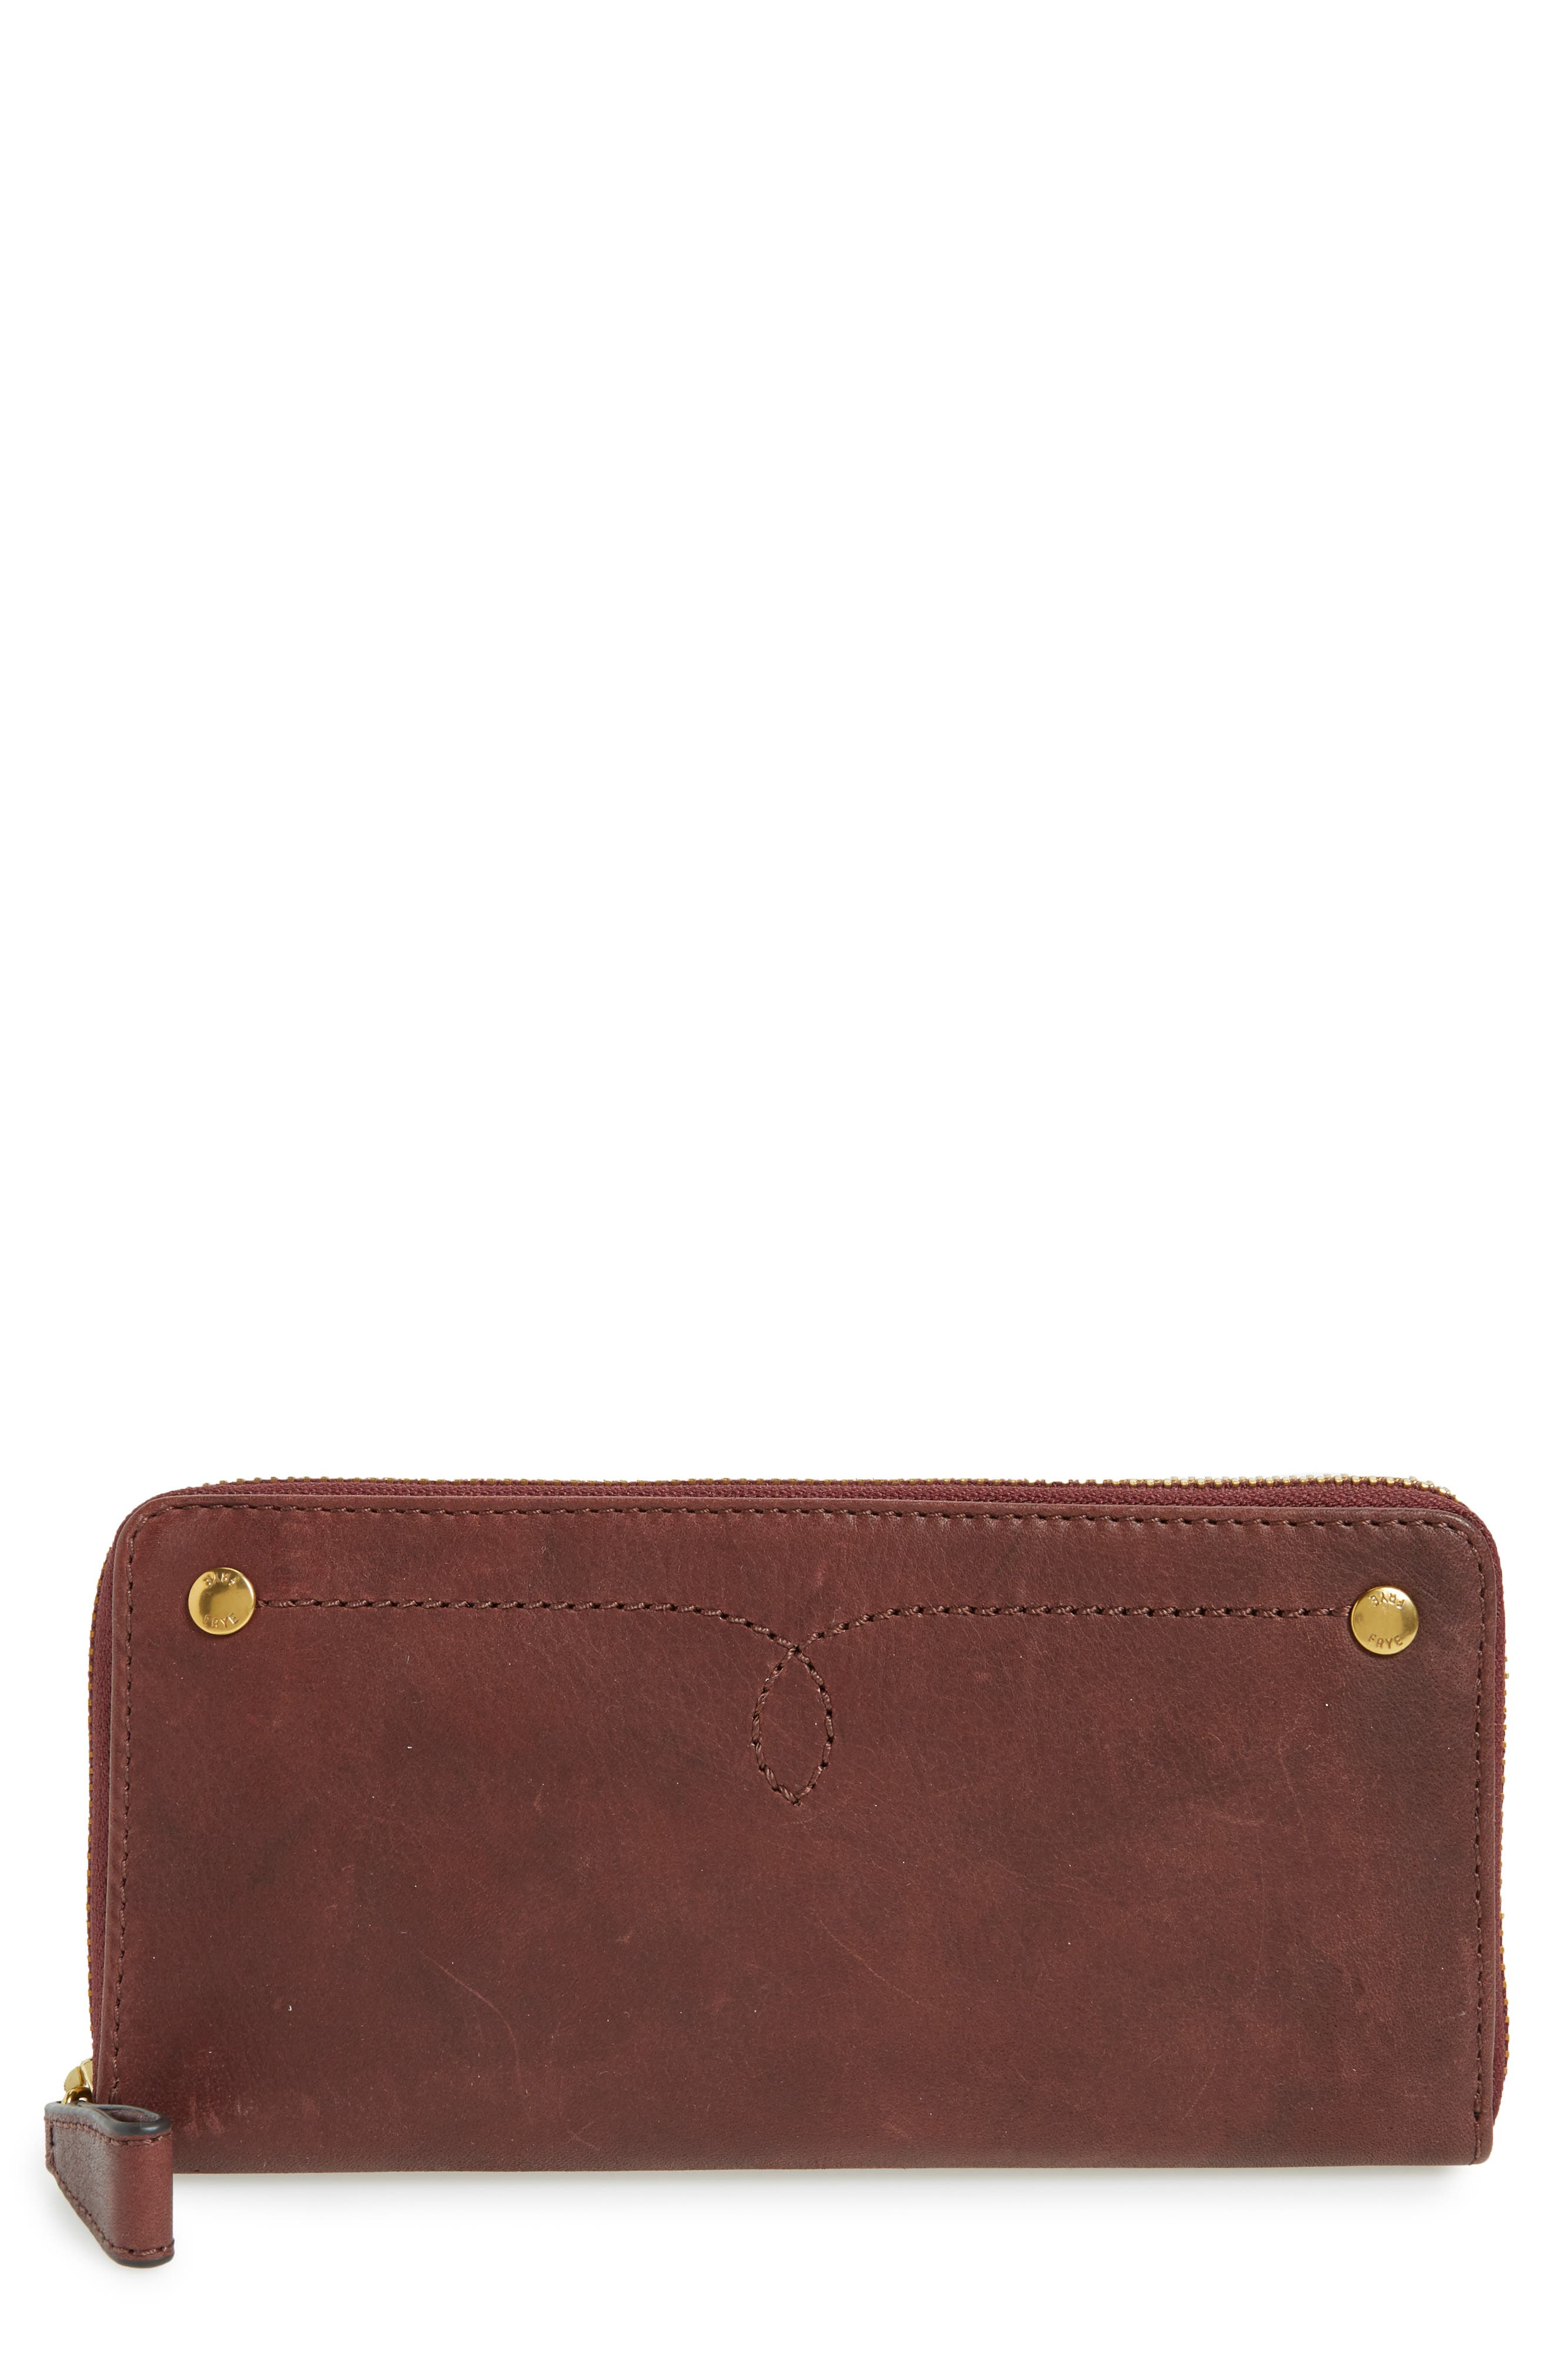 Campus Rivet Leather Continental Zip Wallet,                         Main,                         color, Black Cherry